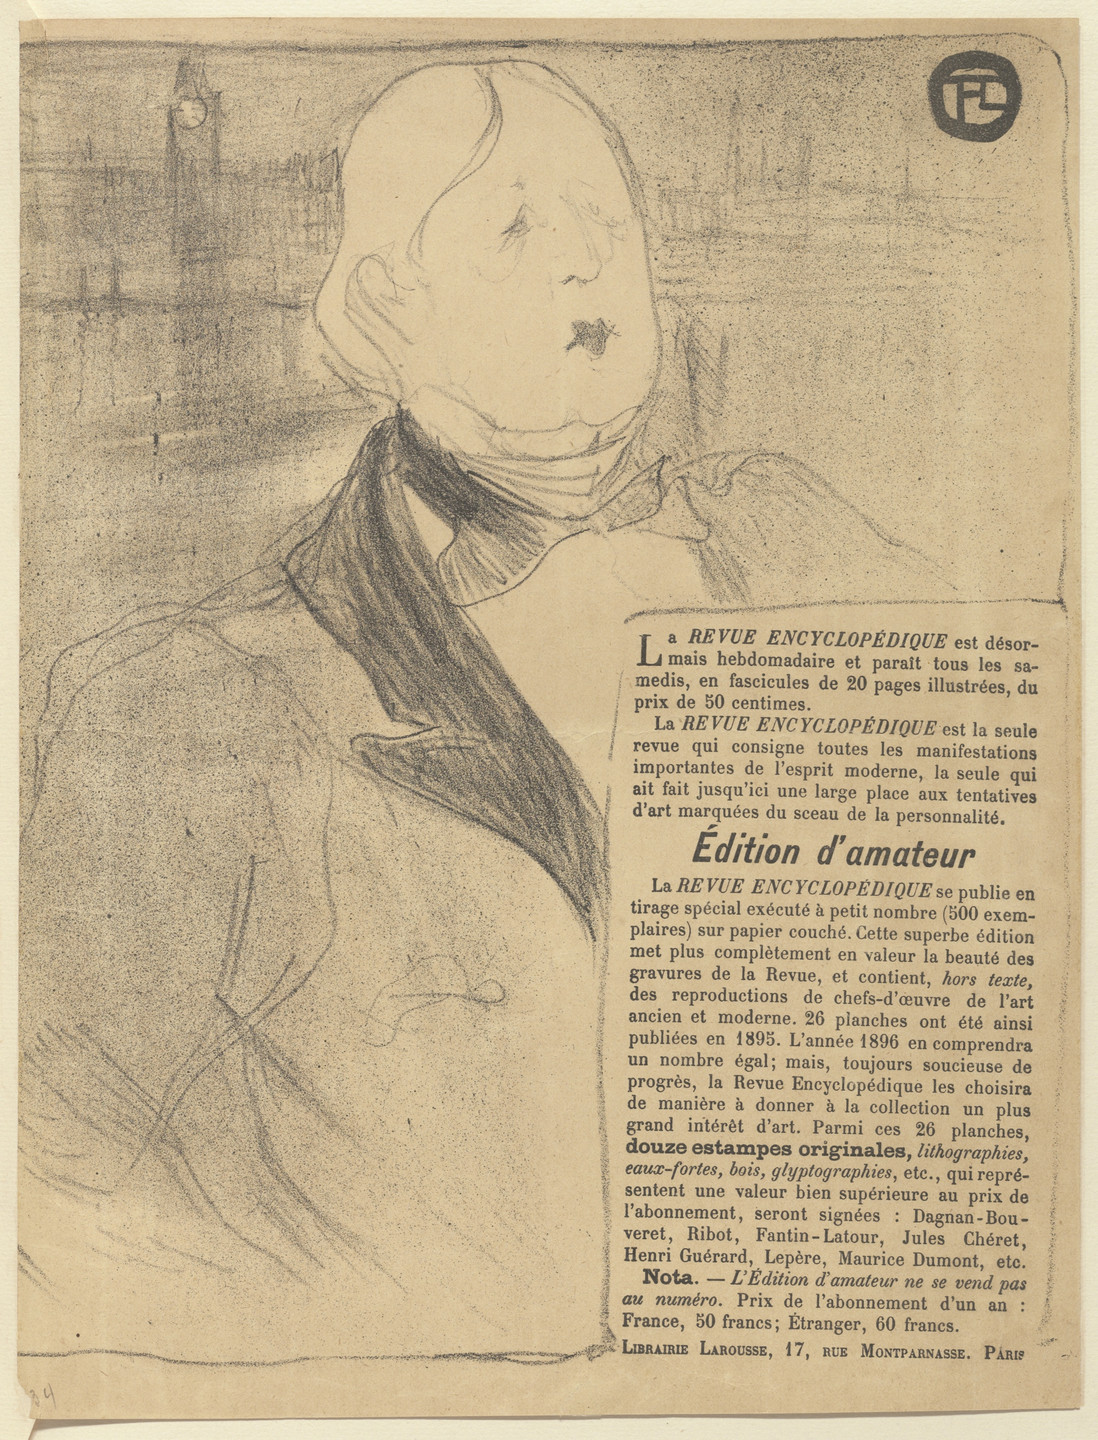 Henri de Toulouse-Lautrec. Oscar Wilde, program for Rafaël and Salomé from The Beraldi Album of Theatre Programs. 1896